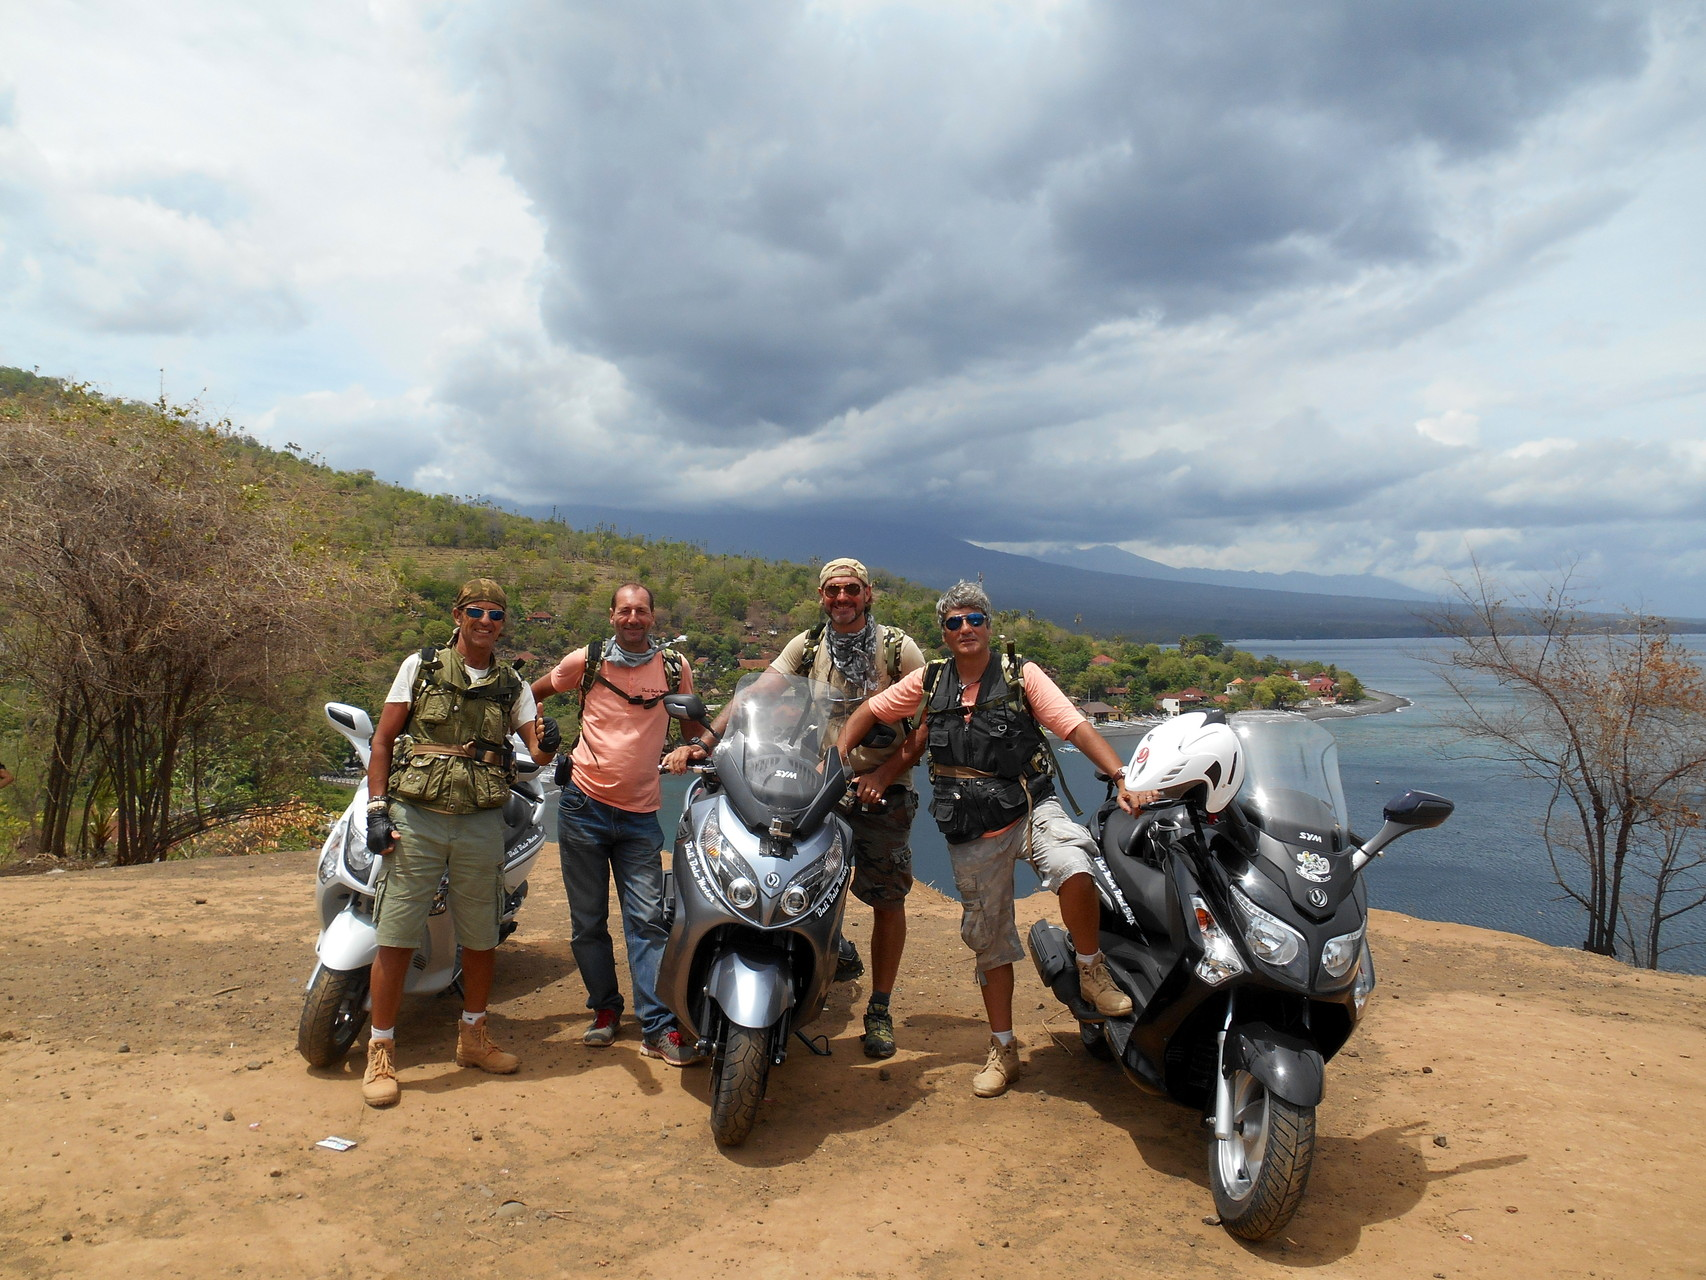 Personalized tour: Wish to live a talor-made adventure? Call Bali Balo Motor & Tours!